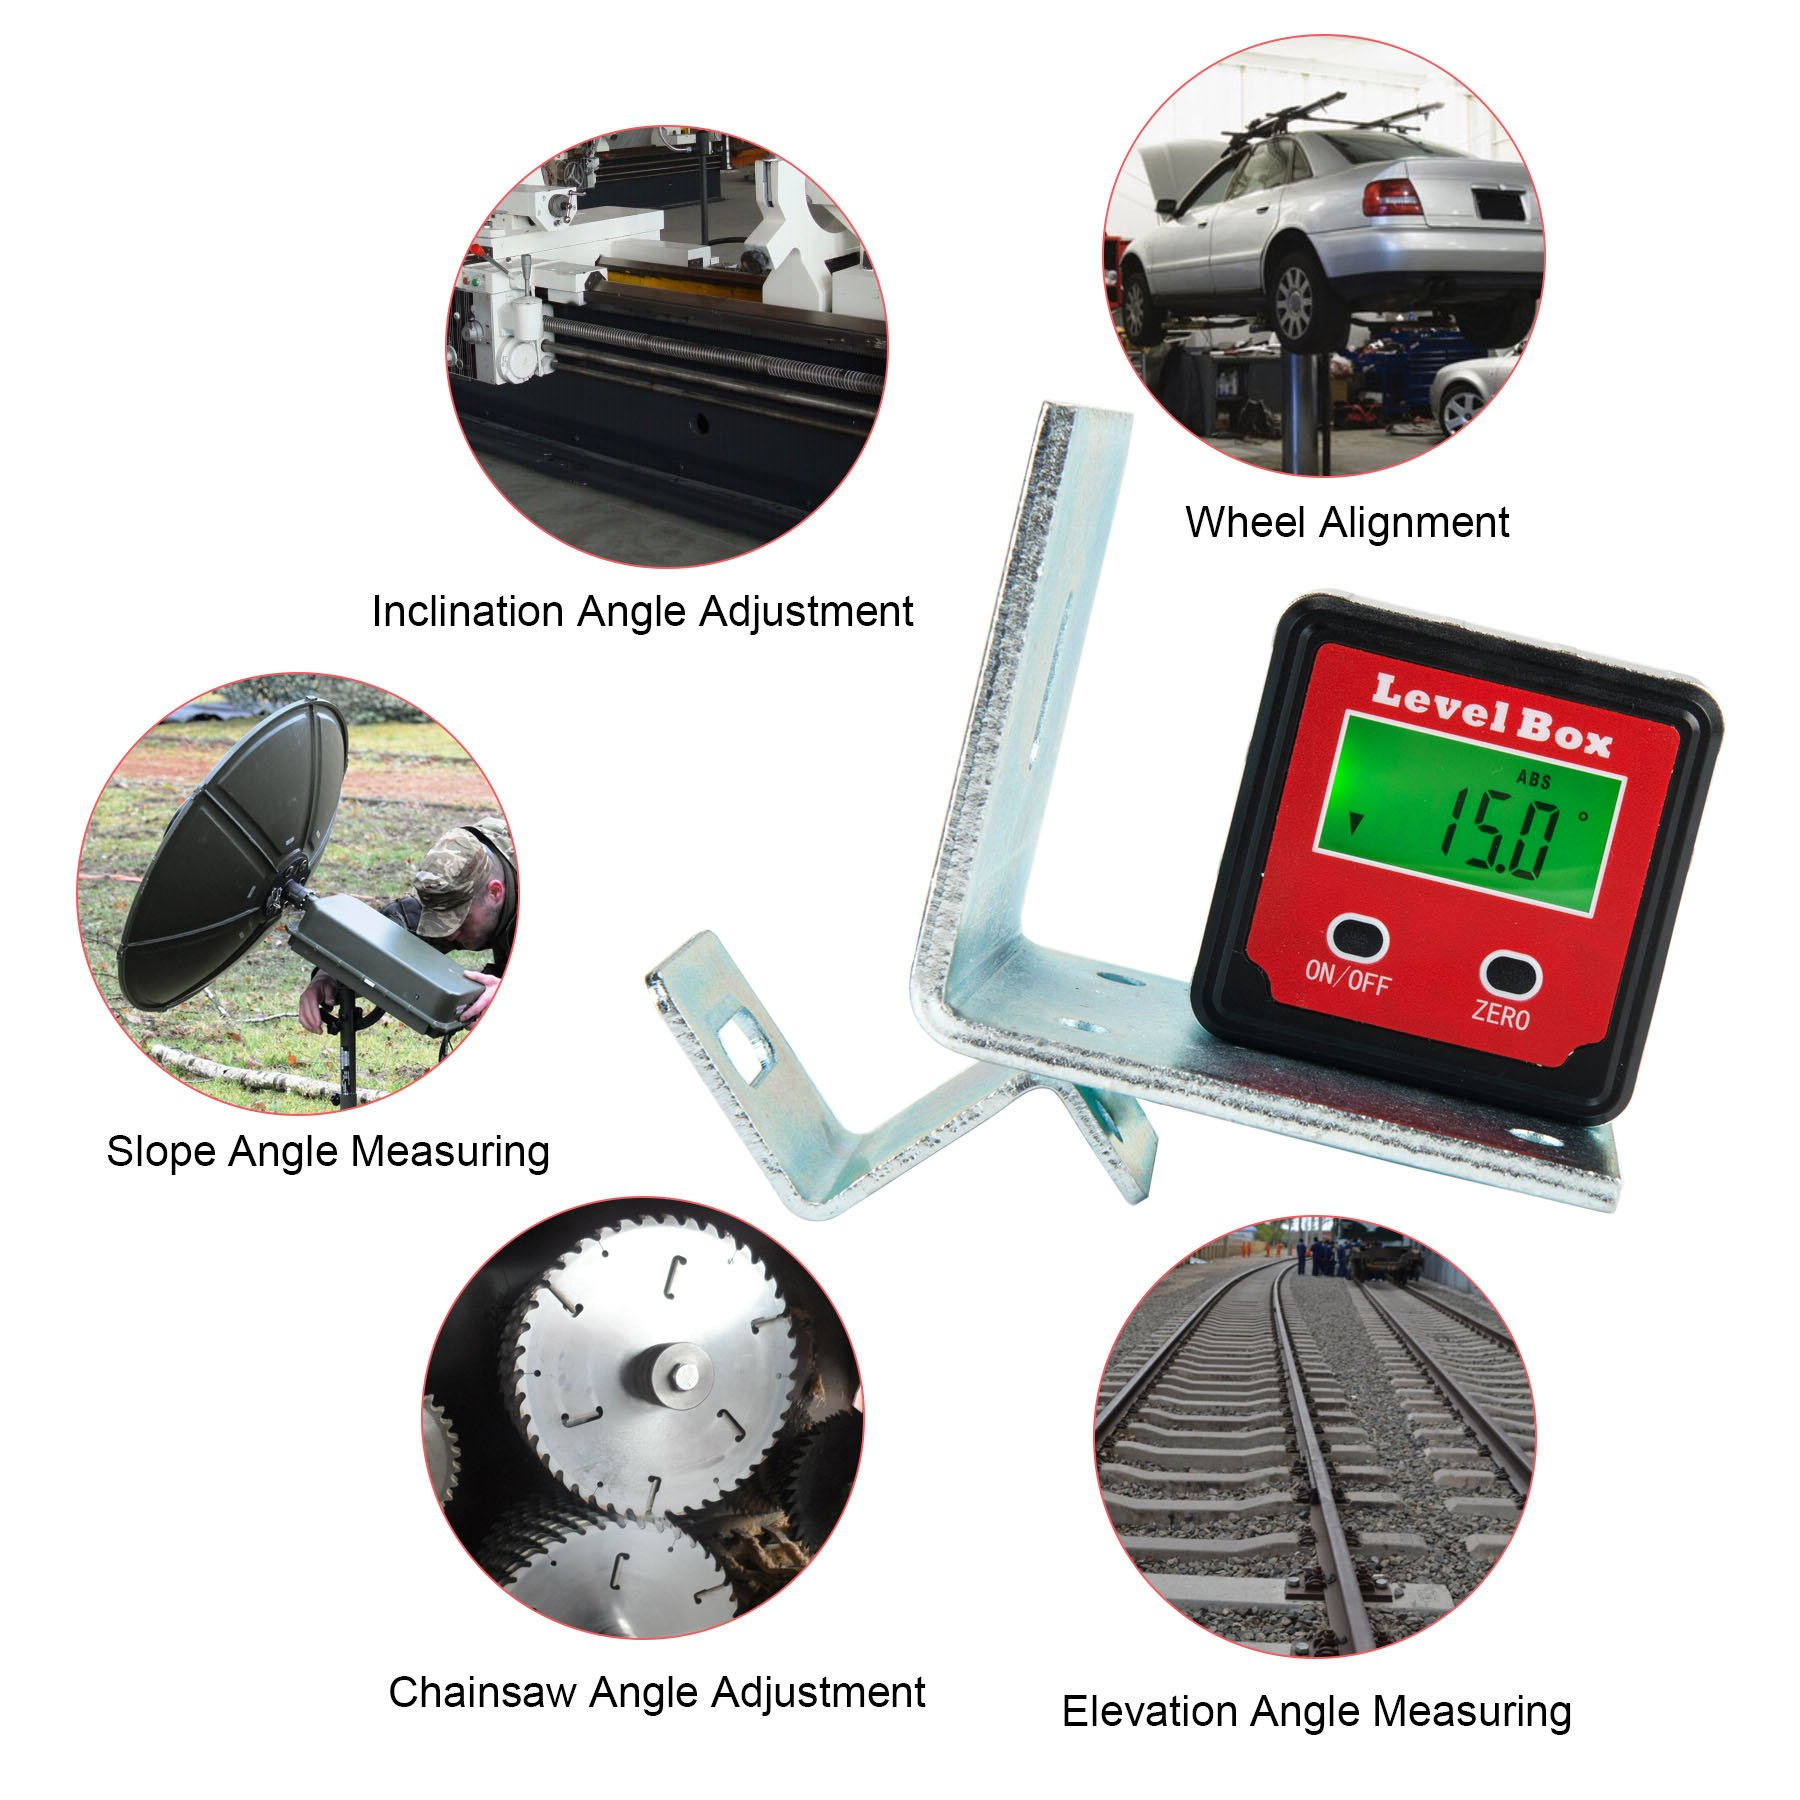 CO-Z Digital Angle Gauge/Level/Protractor/Angle Finder/Bevel Gauge/Inclinometer/with Backlight and Magnetic Base, Electronic Angle Finding for Table Miter Brand Saw, Accurate Digital Level